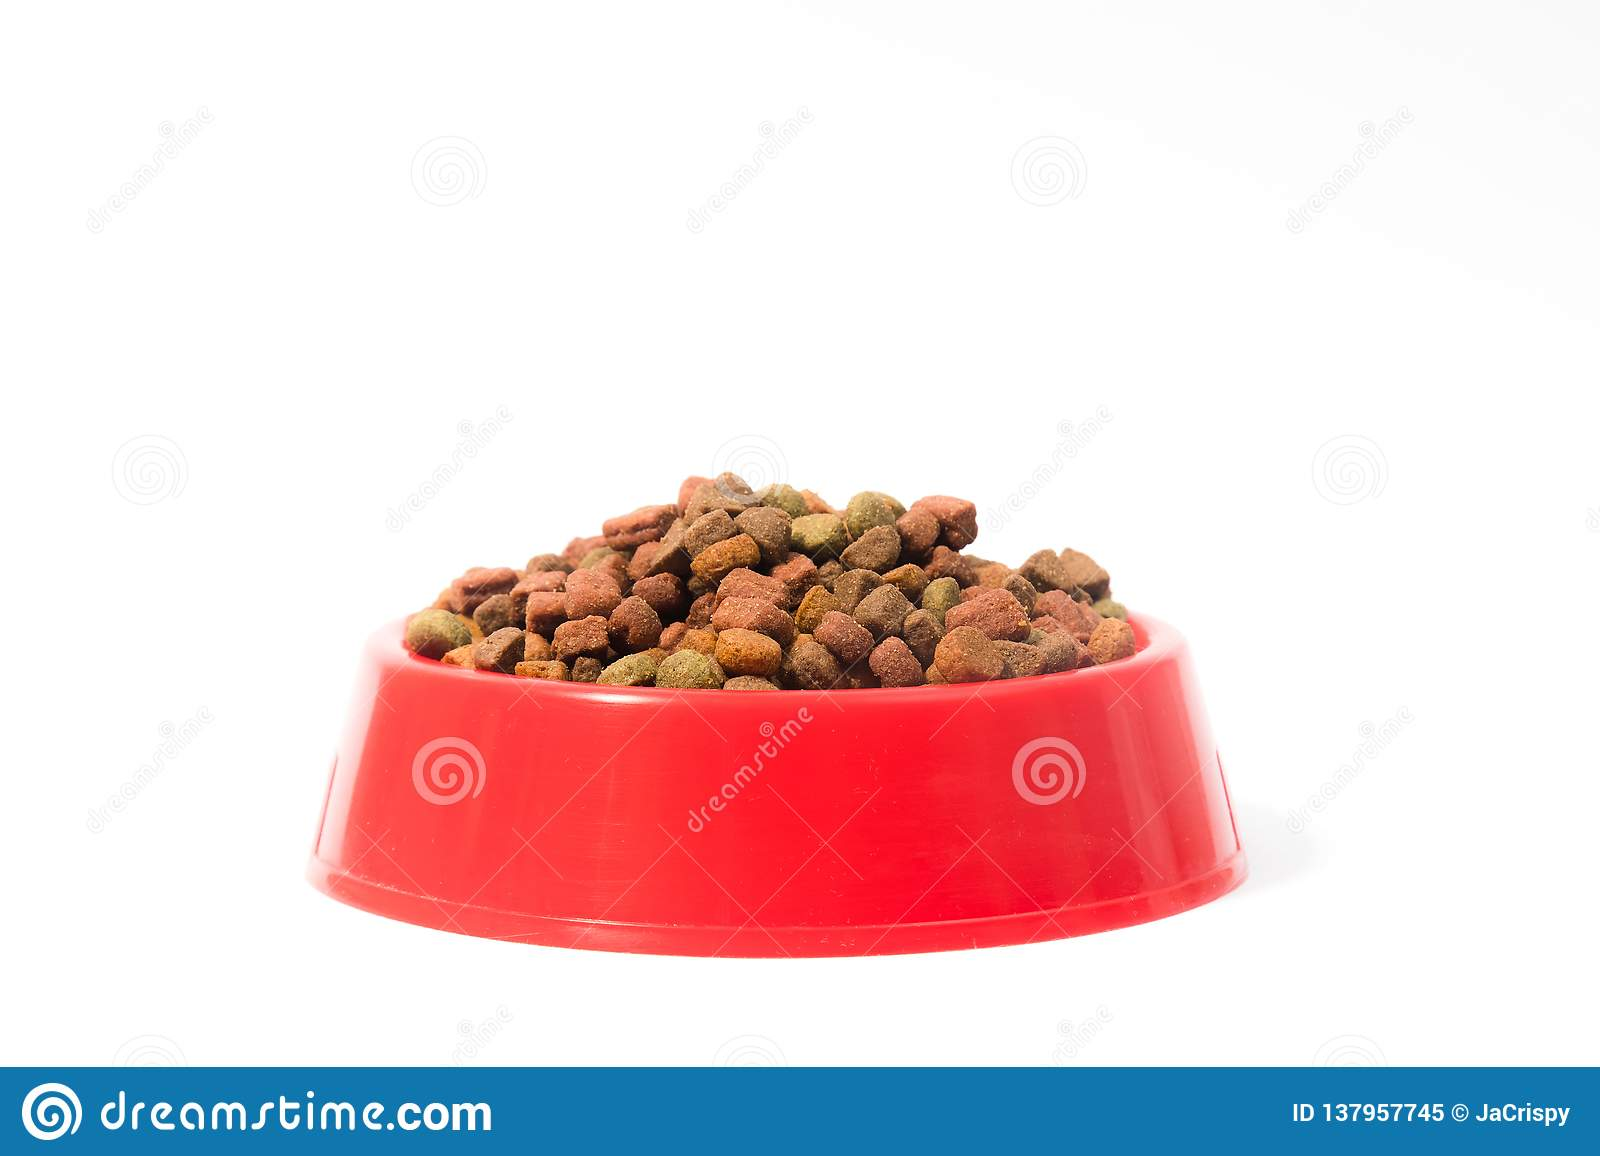 Red bowl with dry animal food for cats or dogs on white background with space for text